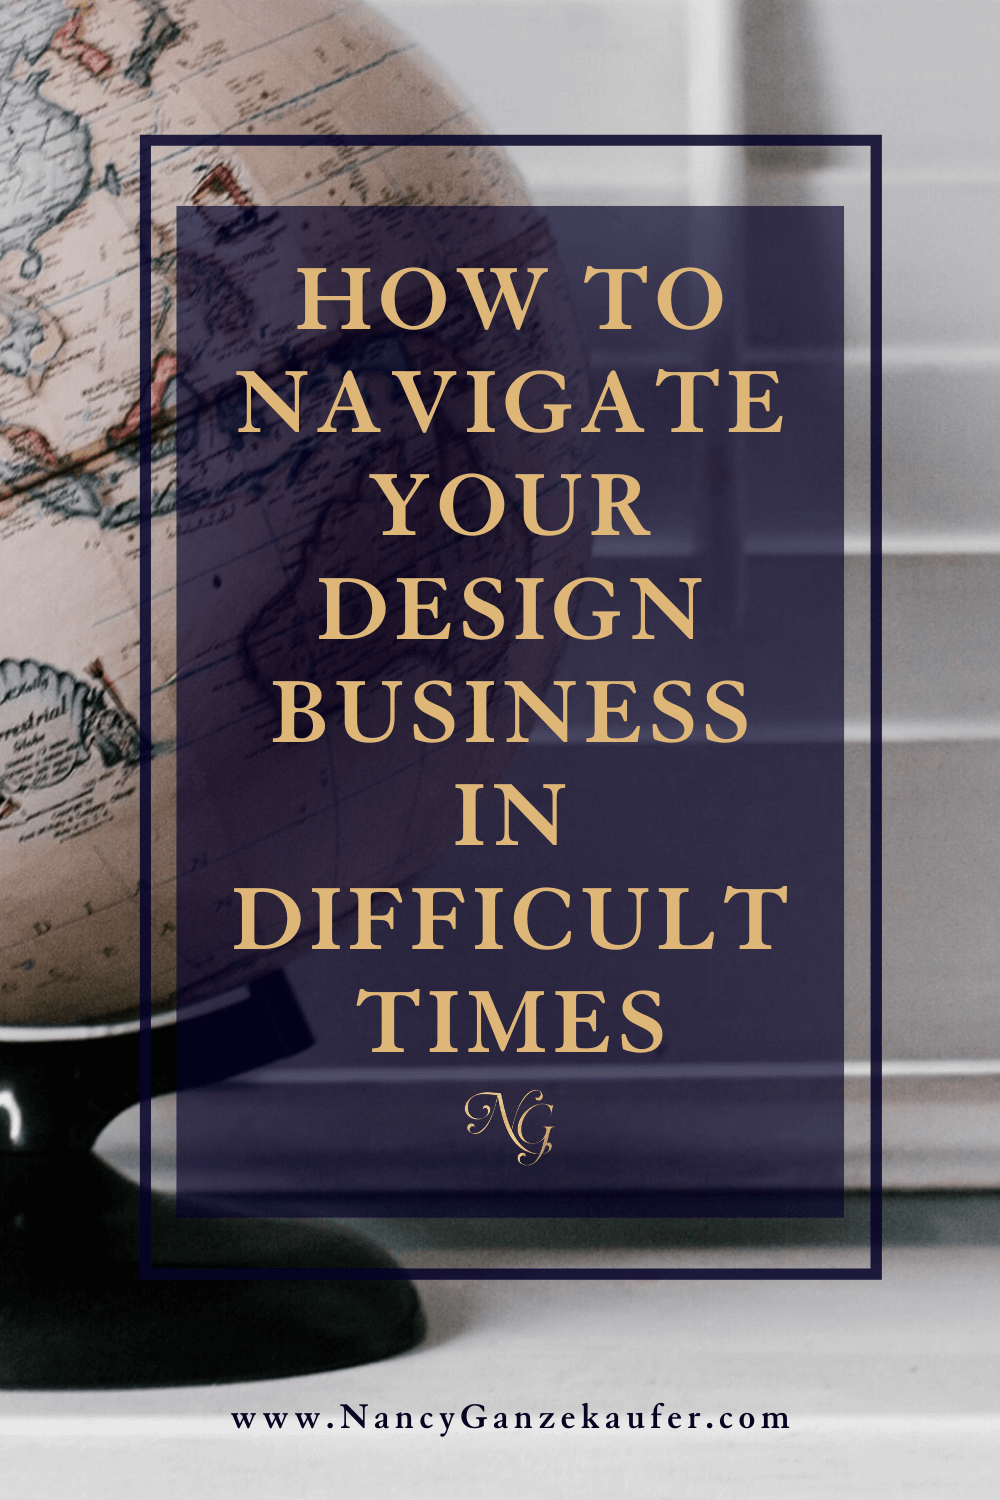 How to navigate a design business during difficult times.